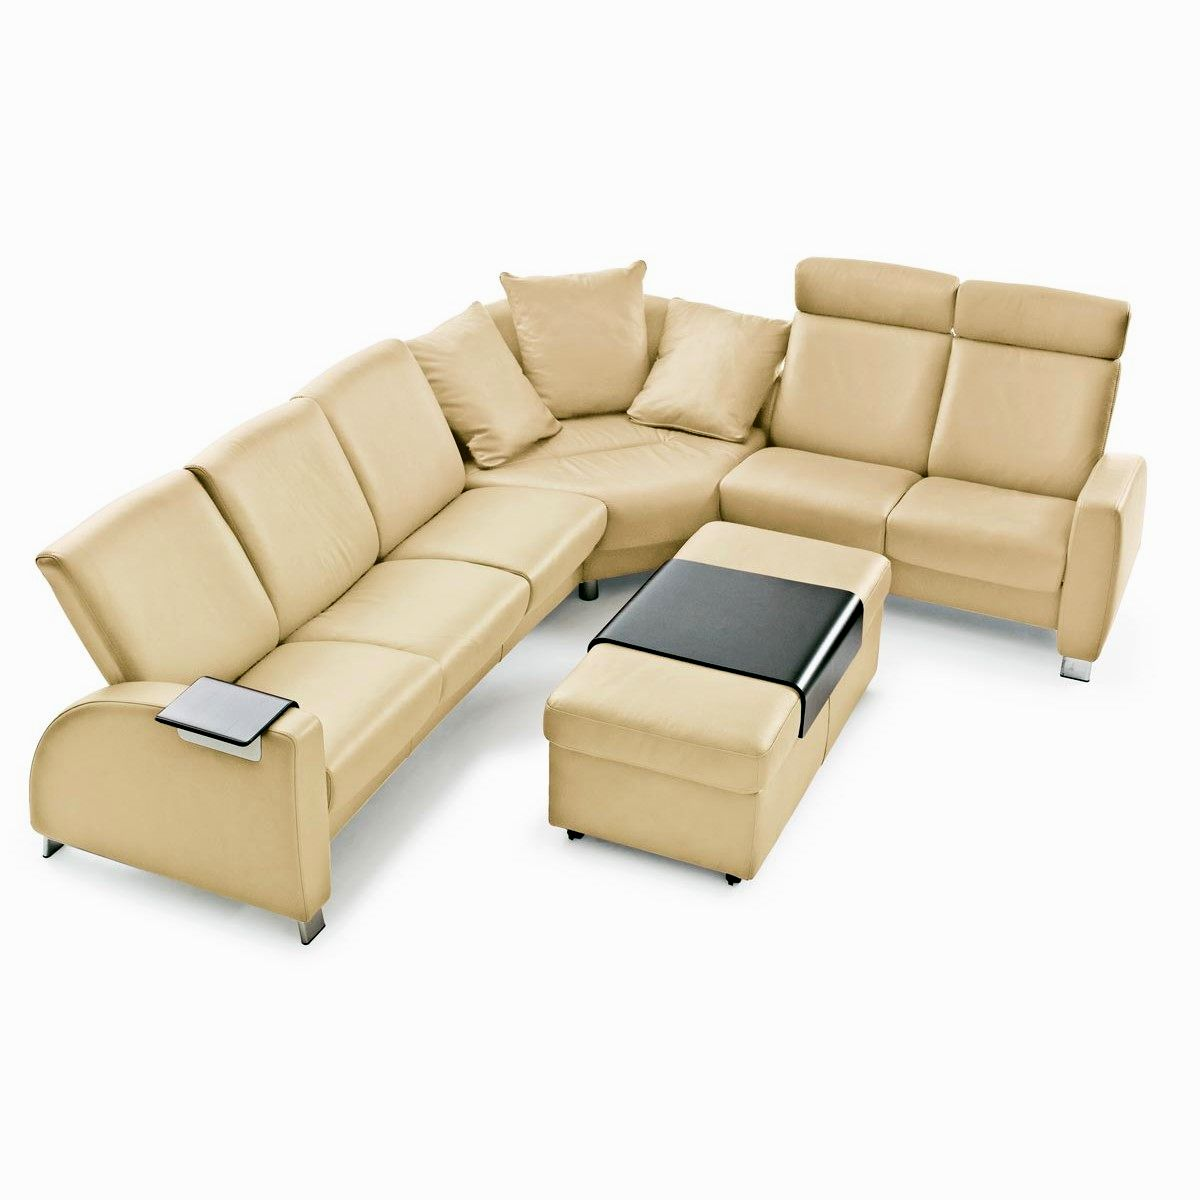 lovely u shaped sectional sofa with chaise online-Unique U Shaped Sectional sofa with Chaise Image